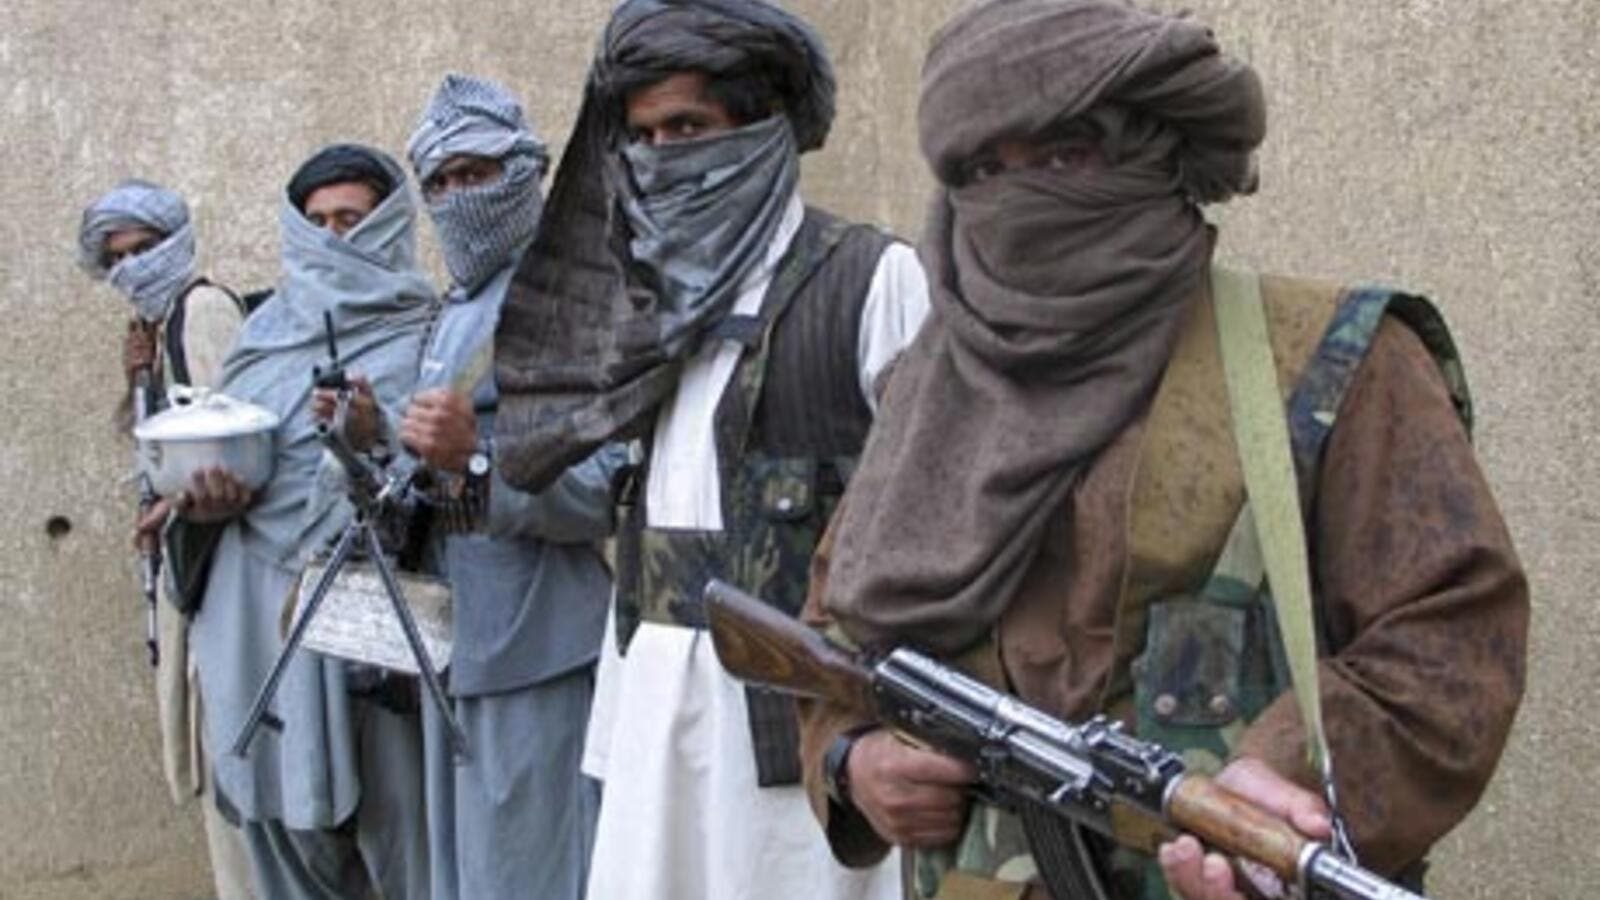 Taliban fighters in Afghanistan. (AFP/File)